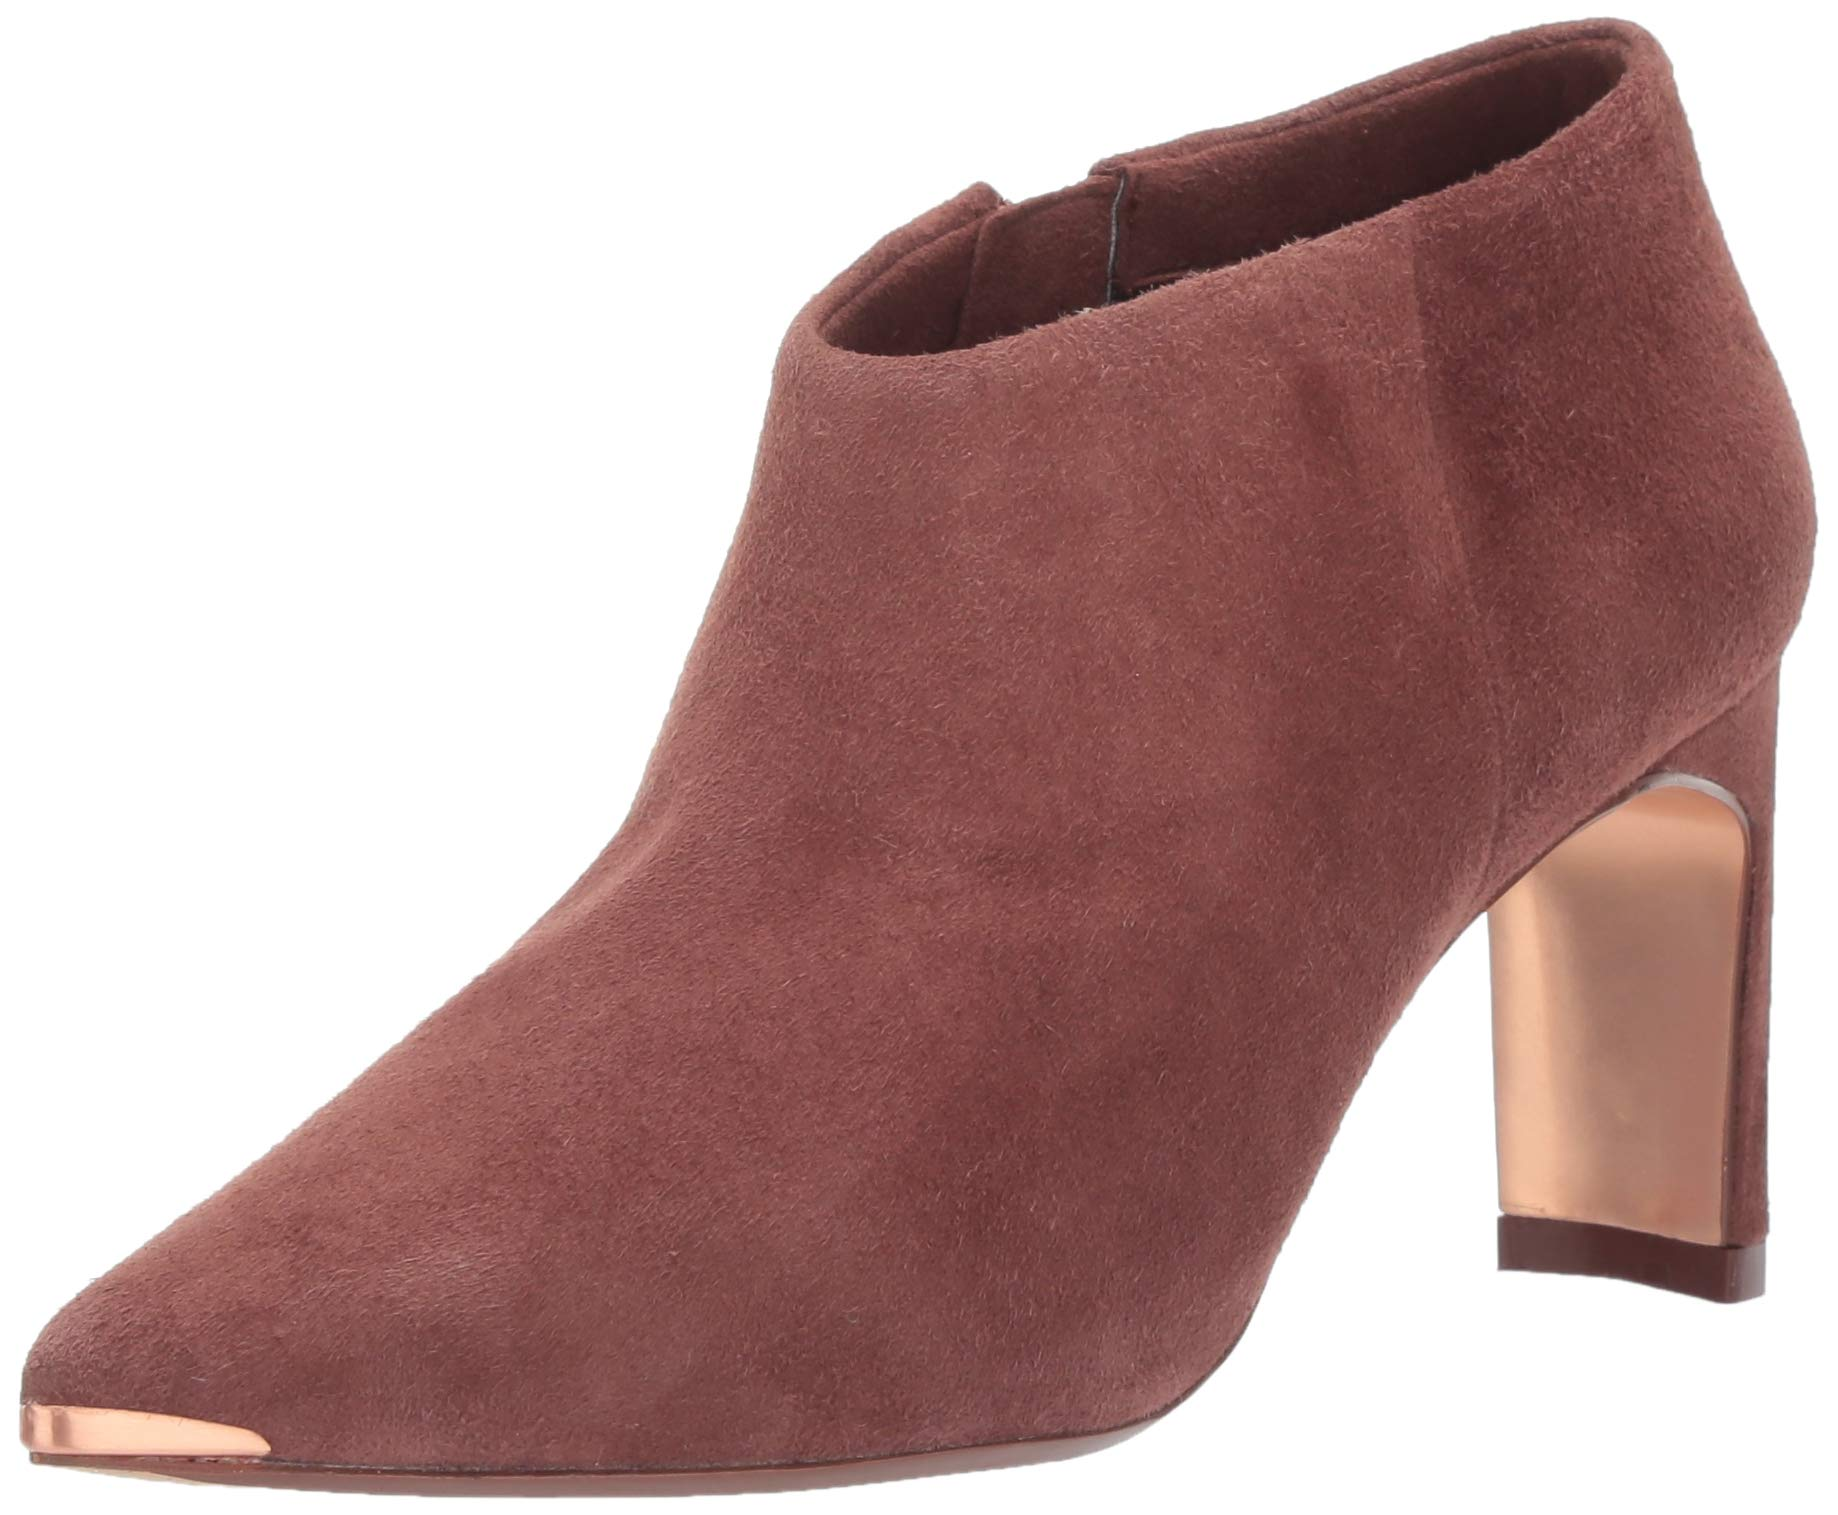 Ted Baker Women's Leiyla Fashion Boot, Conker Suede, 6.5 Medium US